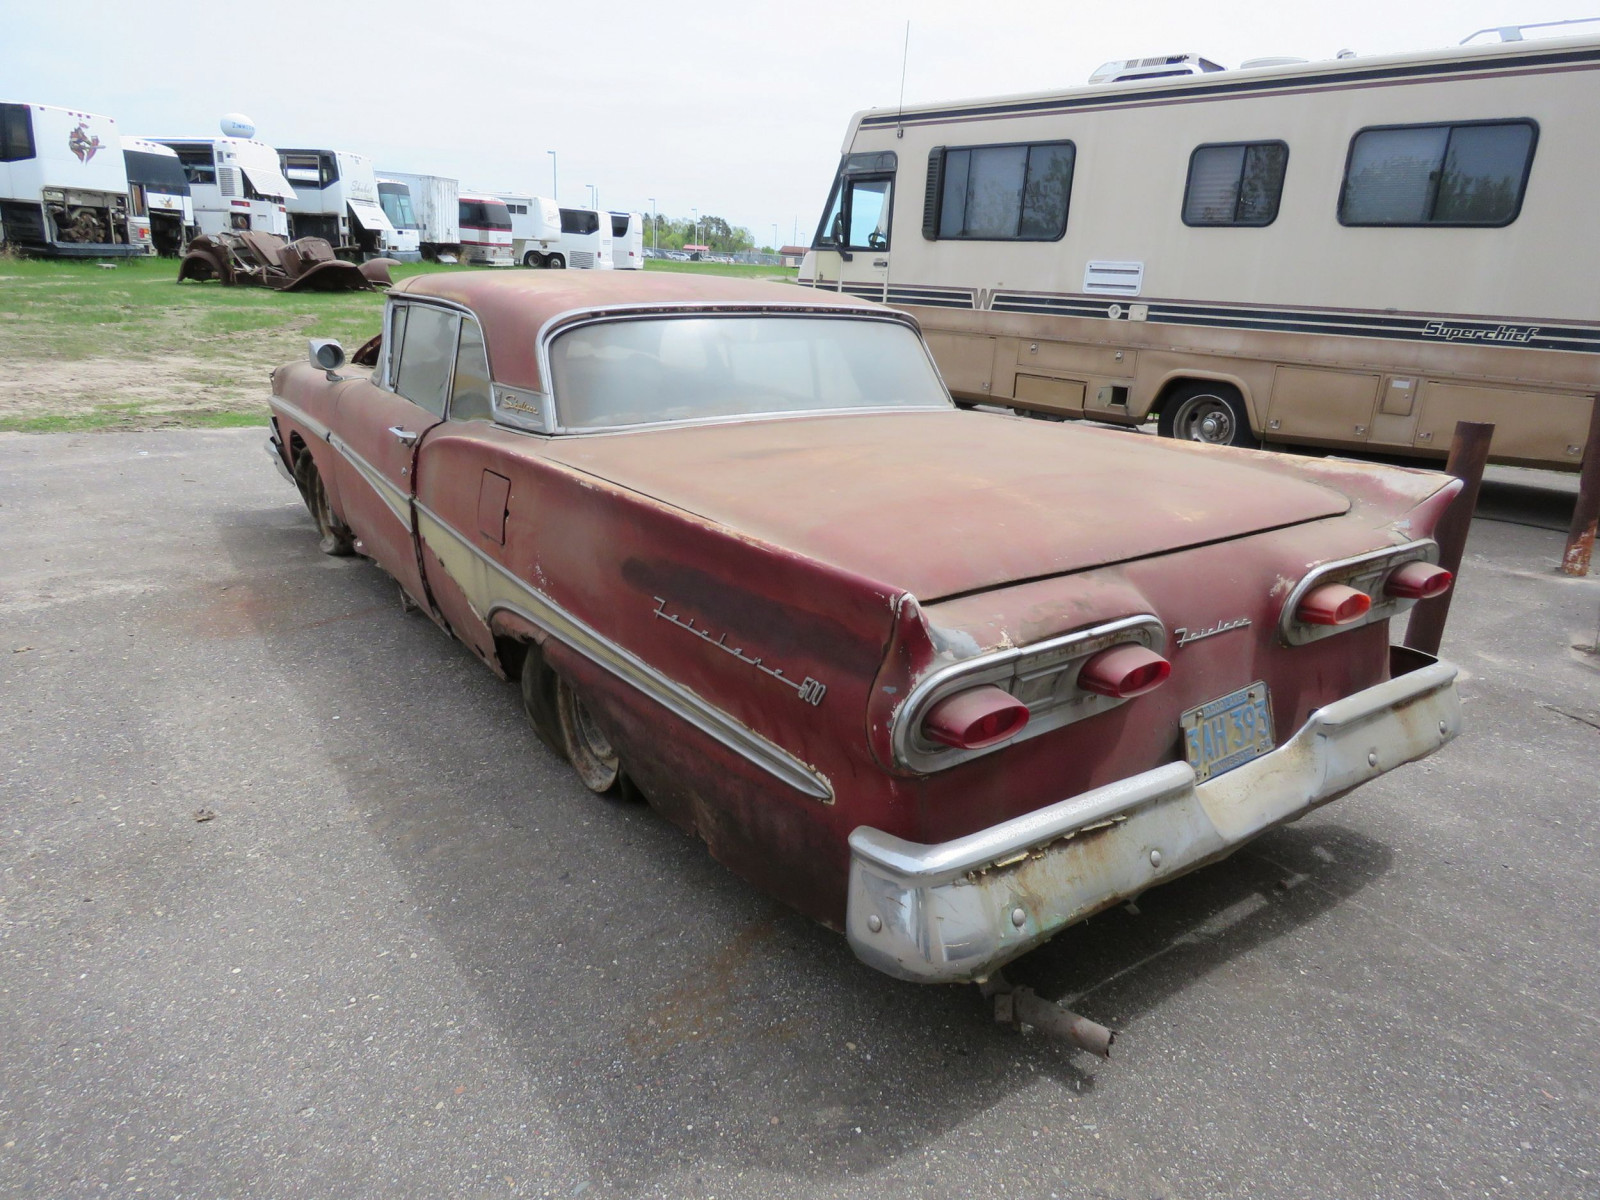 1958 Ford Fairlane 500 Retractable Hardtop Project - Image 6